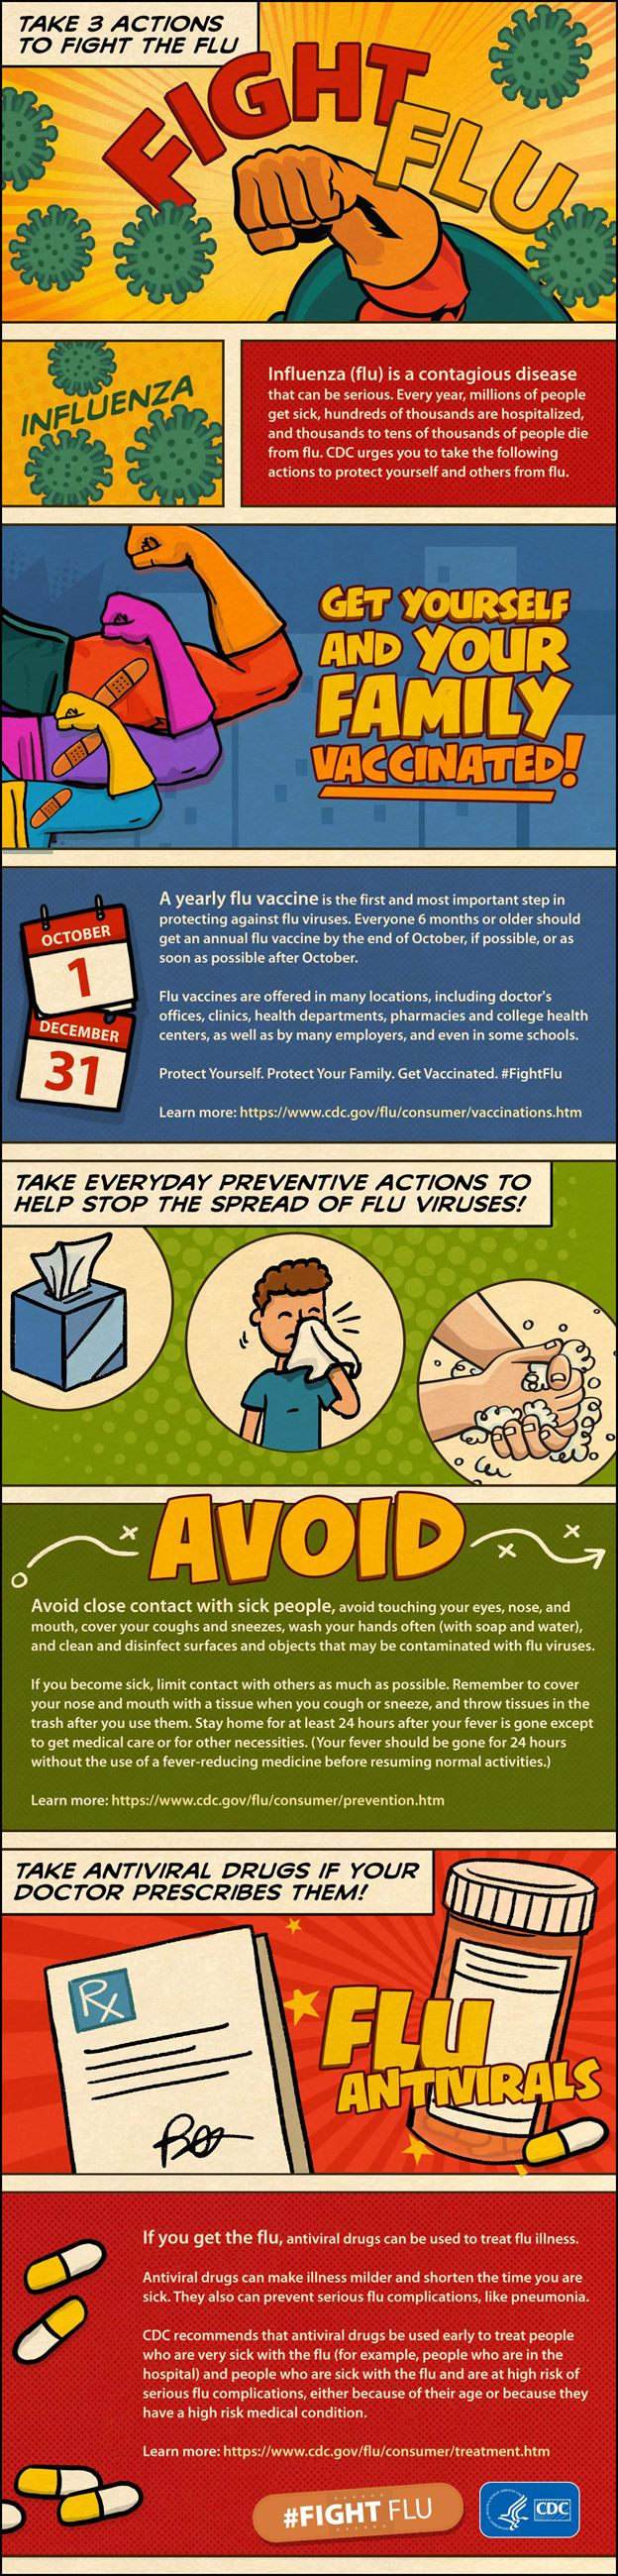 Take3 Fight Flu Infographic